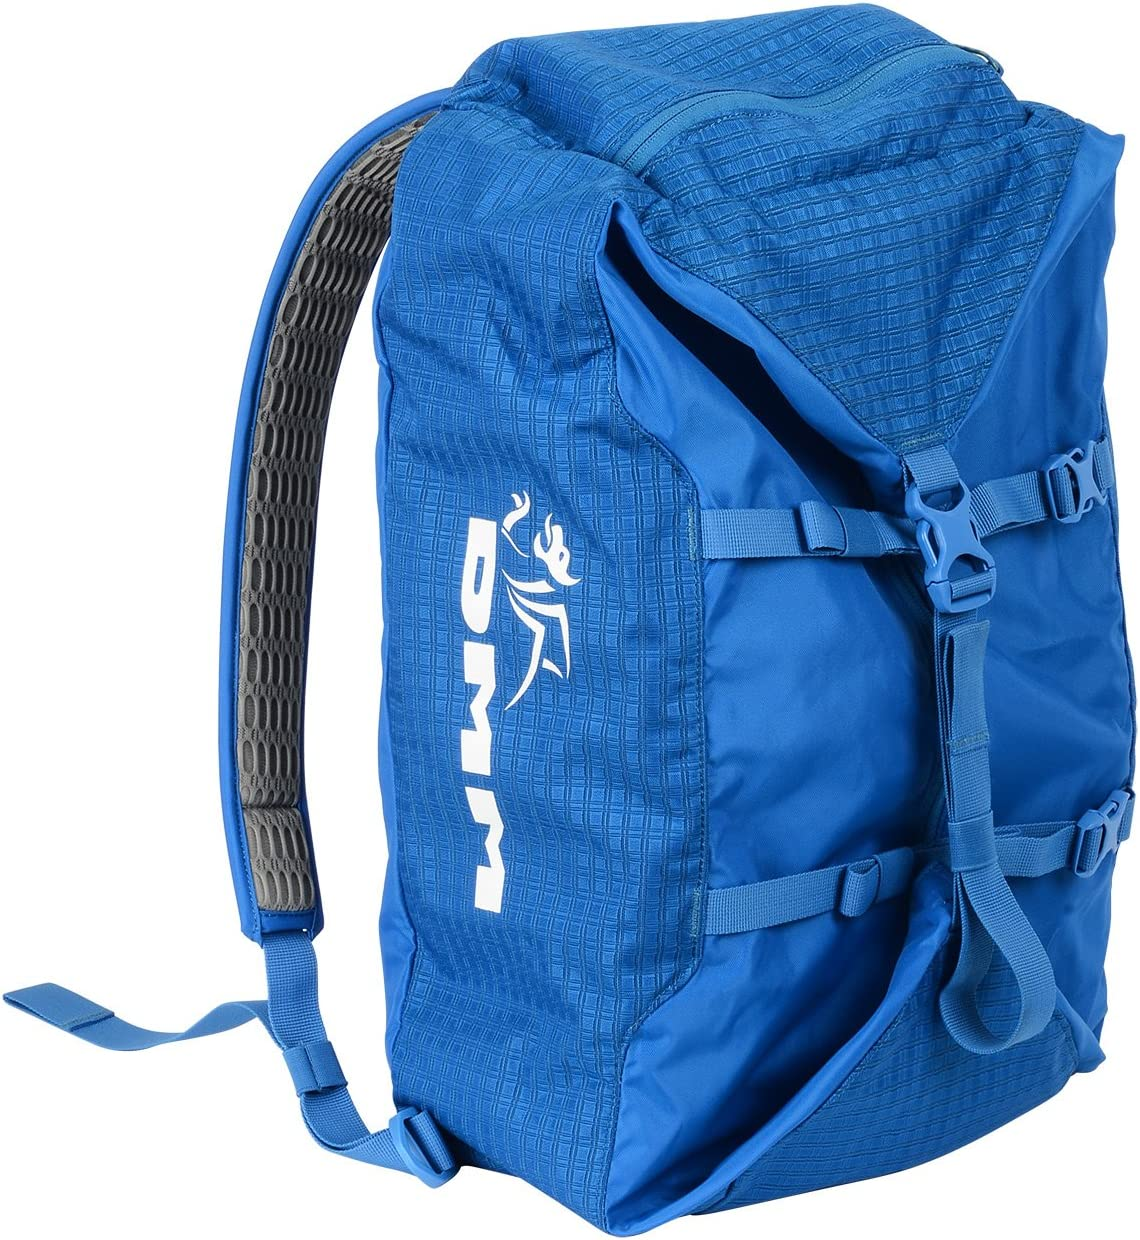 MD DMM - Classic Rope Bag Blue